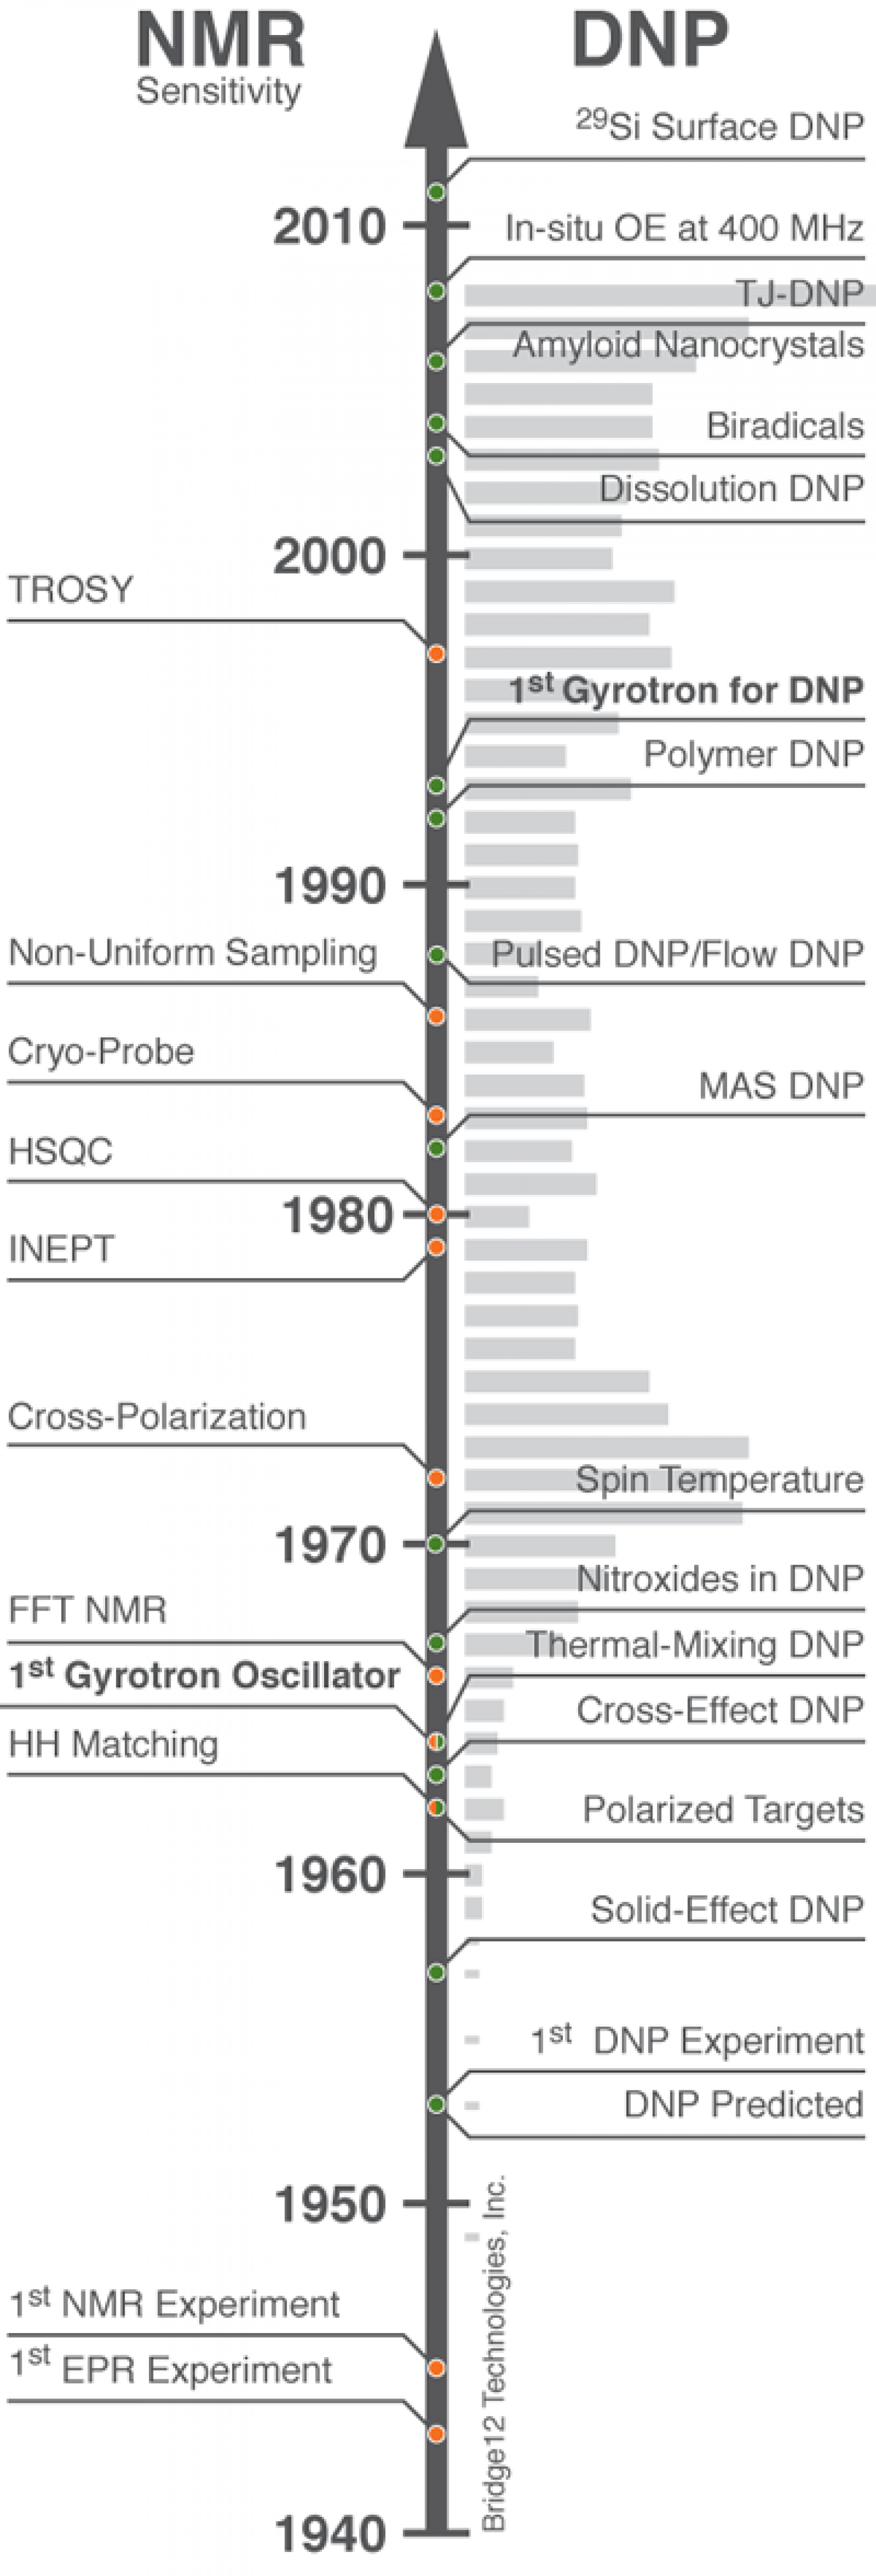 The Development of Dynamic Nuclear Polarization NMR Infographic